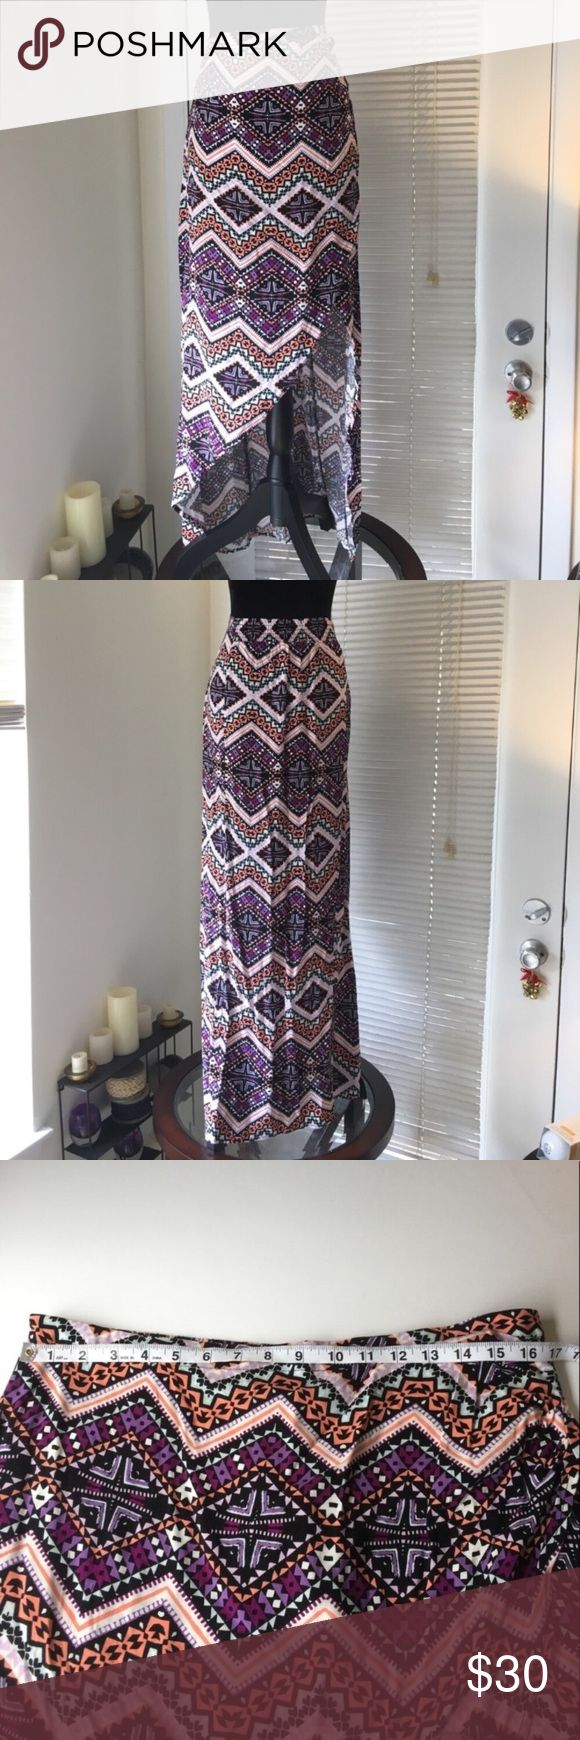 Express Chevron print wrap maxi skirt Purple, coral and pale green Aztec print maxi skirt from Express. Faux wrap style with hi low hem. Elastic at back waist and side zipper. NWT Express Skirts High Low